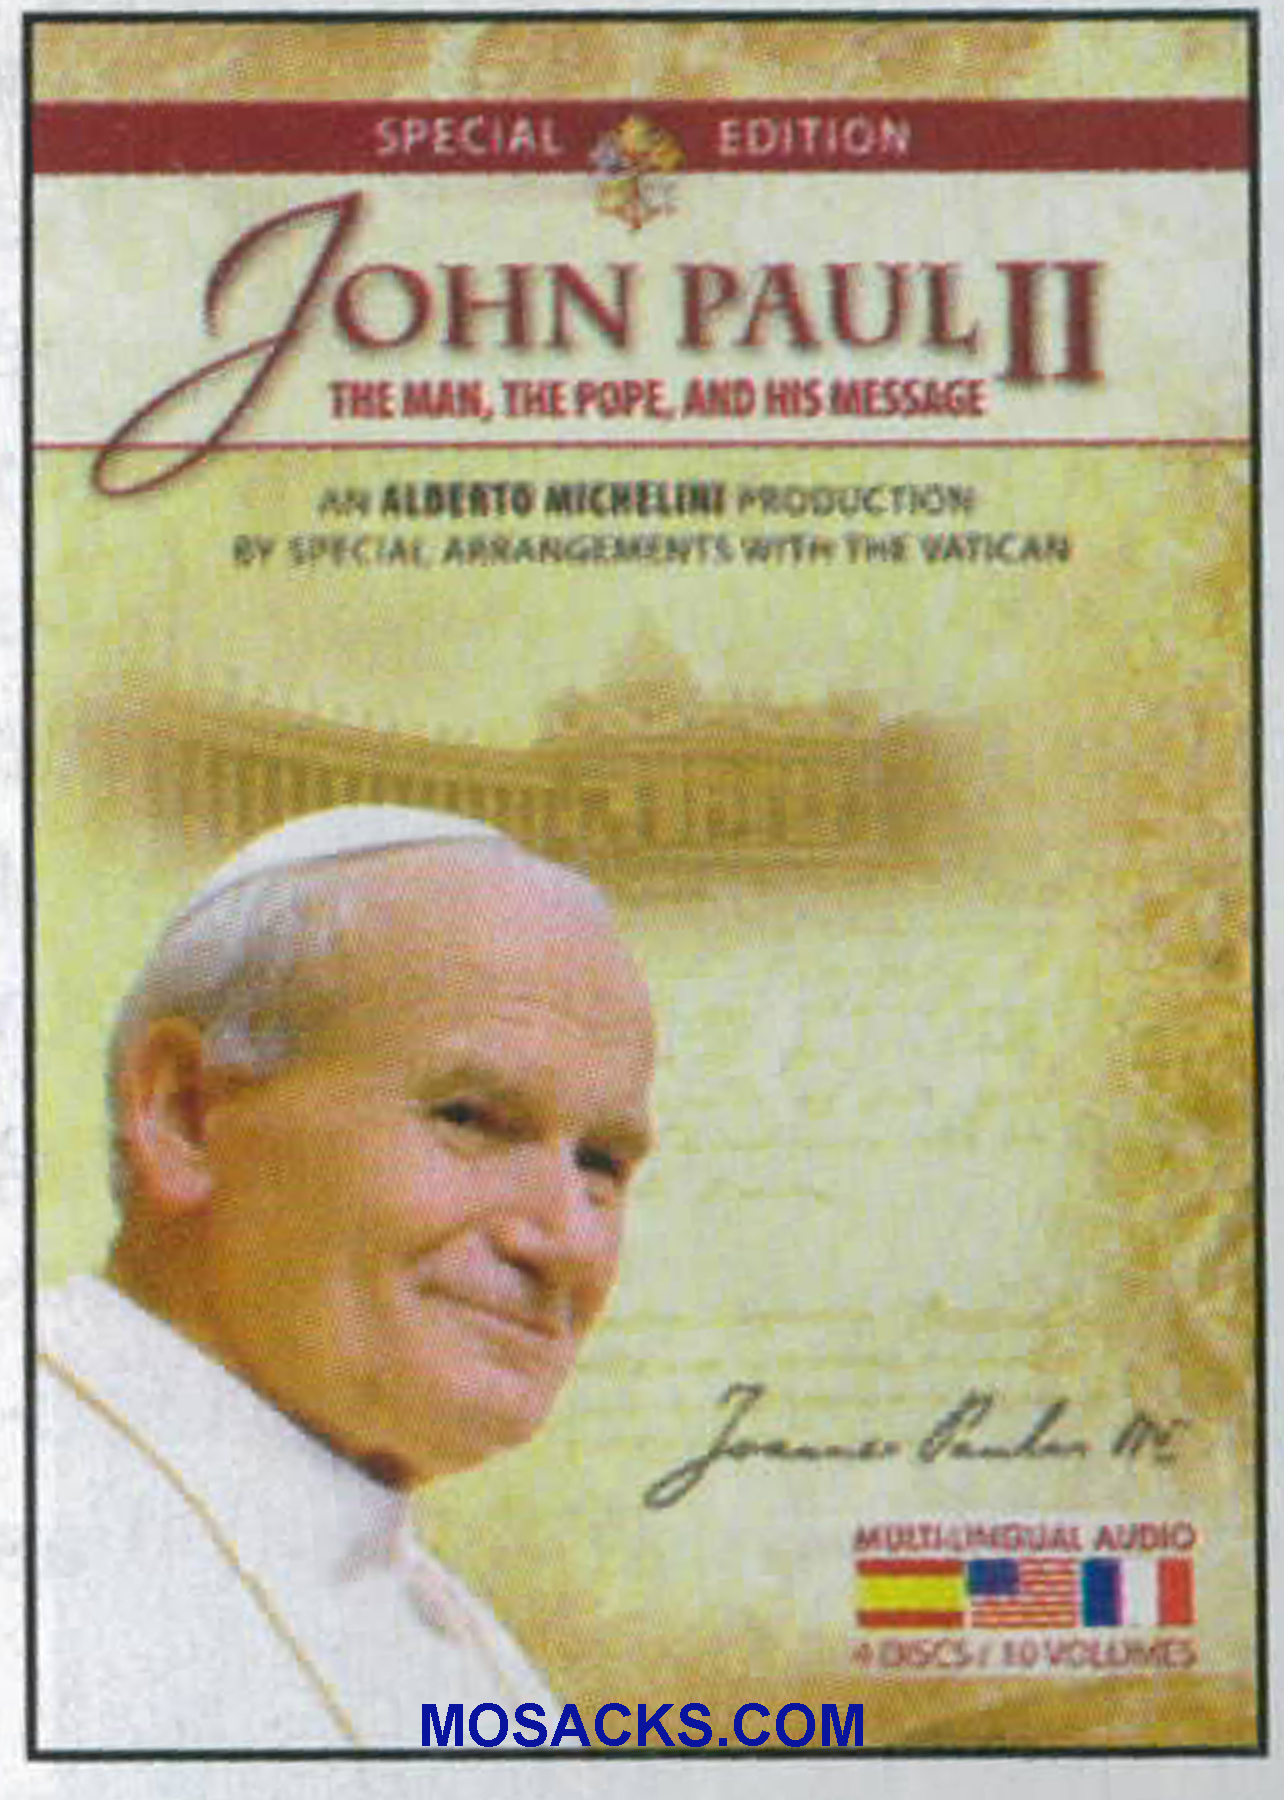 DVD-John Paul II The Man The Pope And His Message 4 DVD Set-JPMP-M